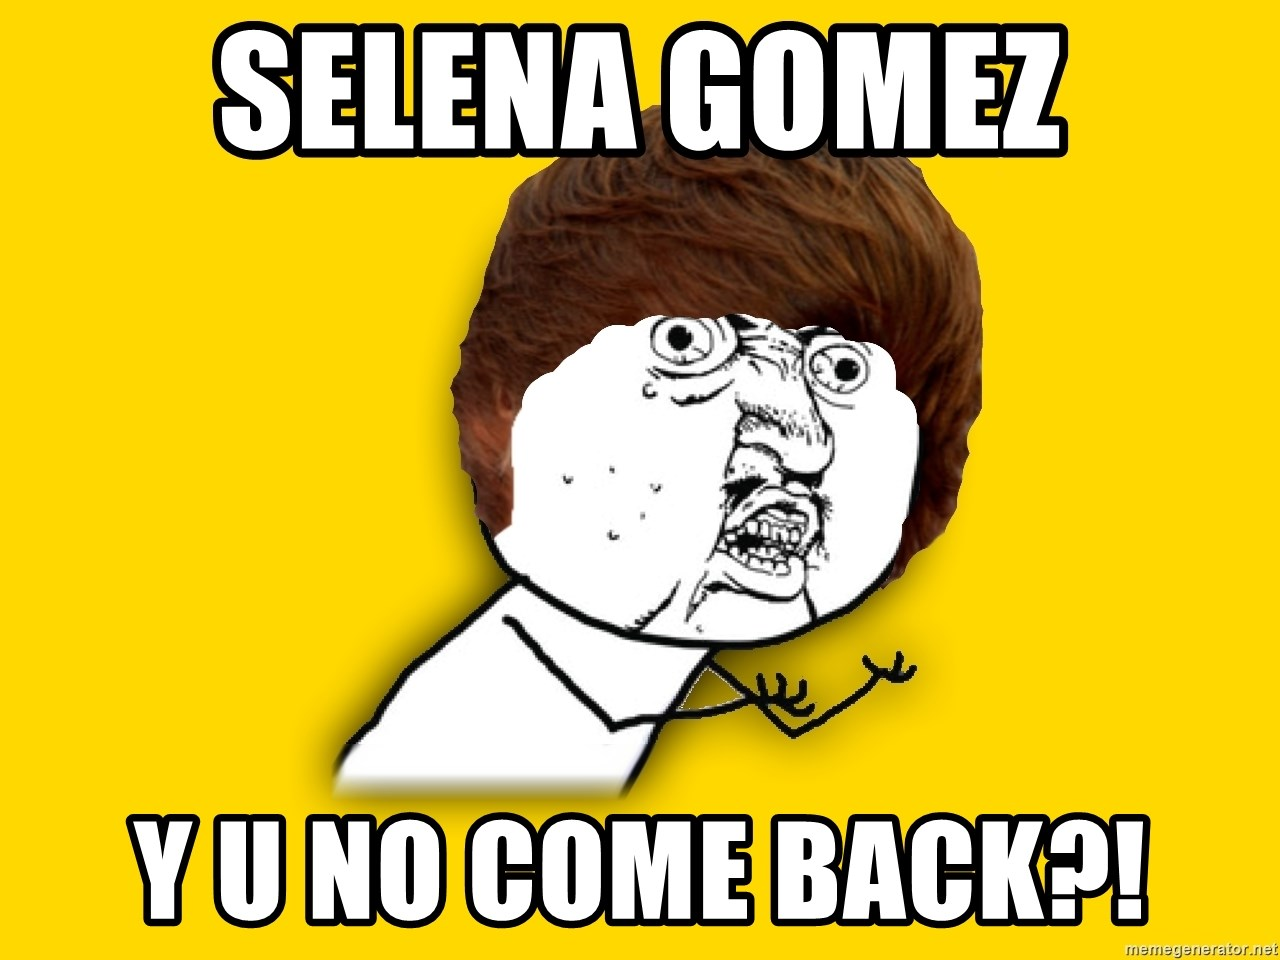 Y U No - selena gomez y u no come back?!